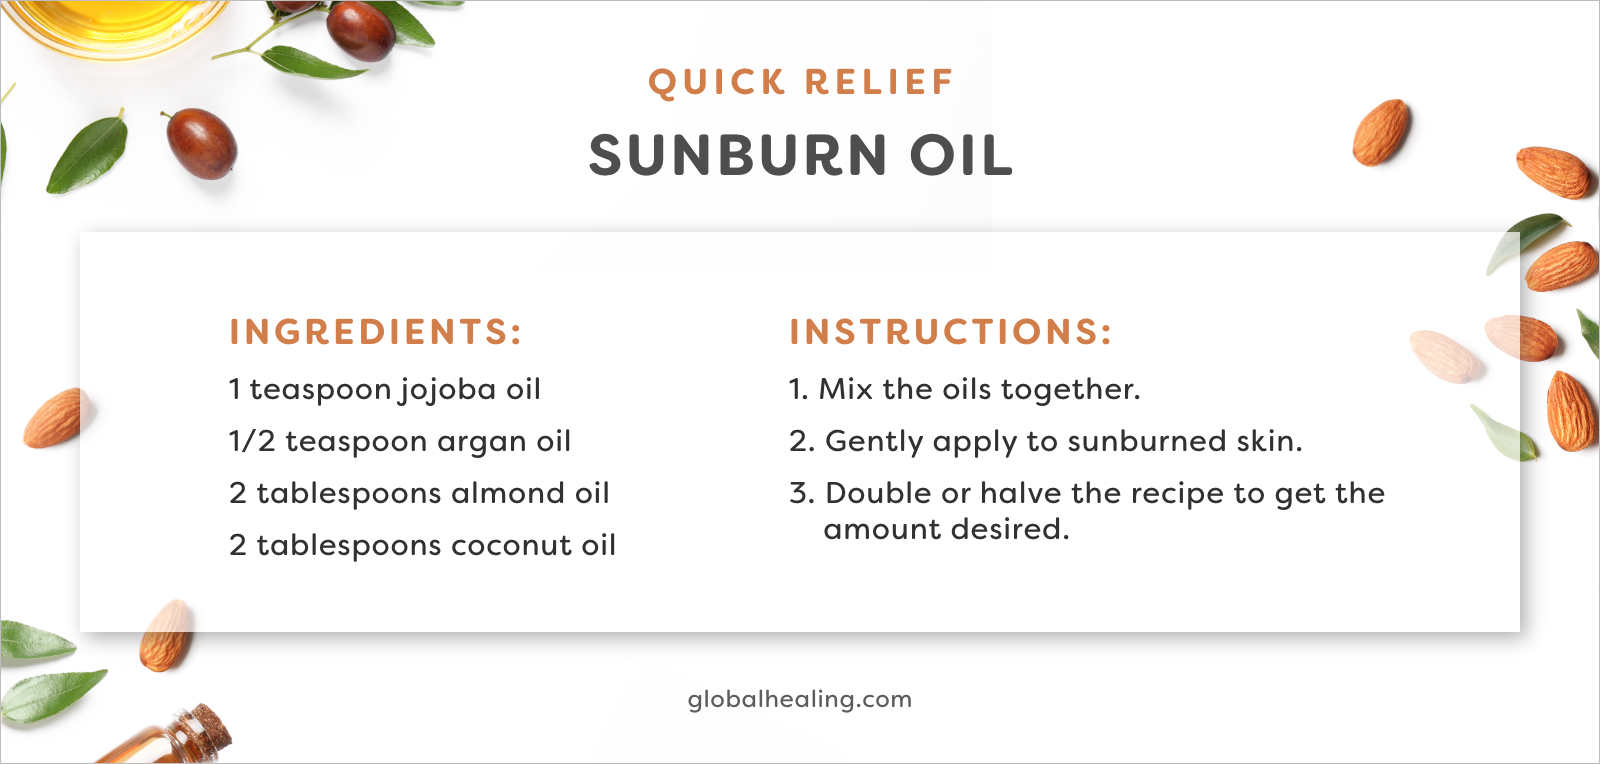 Try this quick relief sunburn oil recipe that'll soothe your skin quickly.